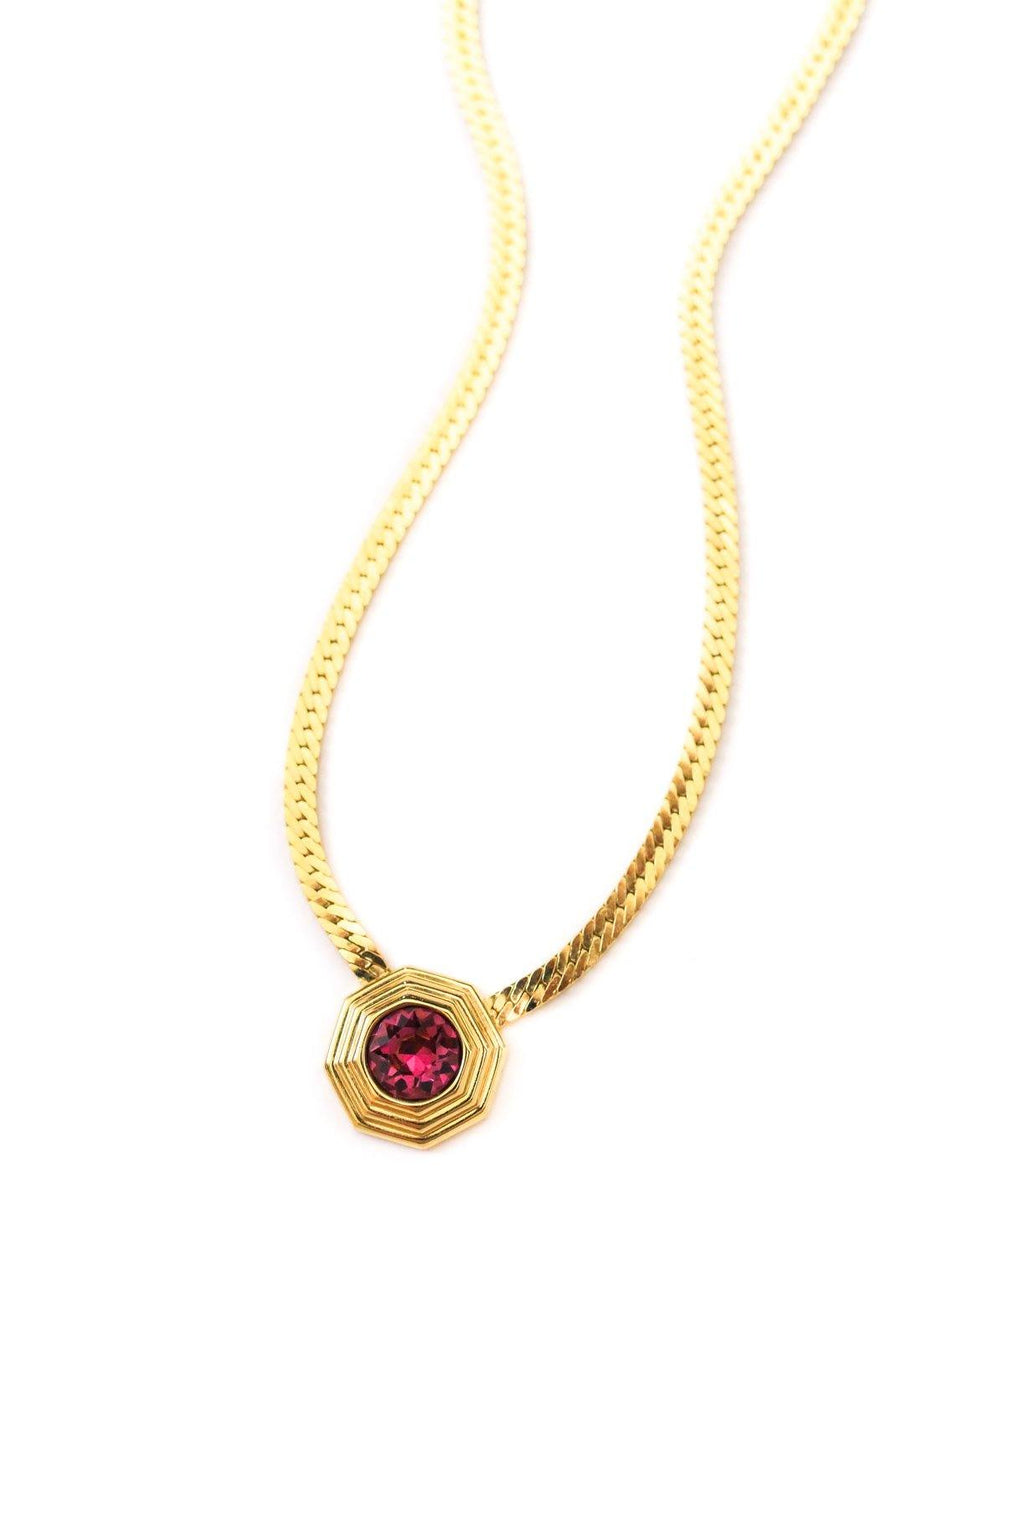 Christian Dior Purple Gem Pendant Necklace